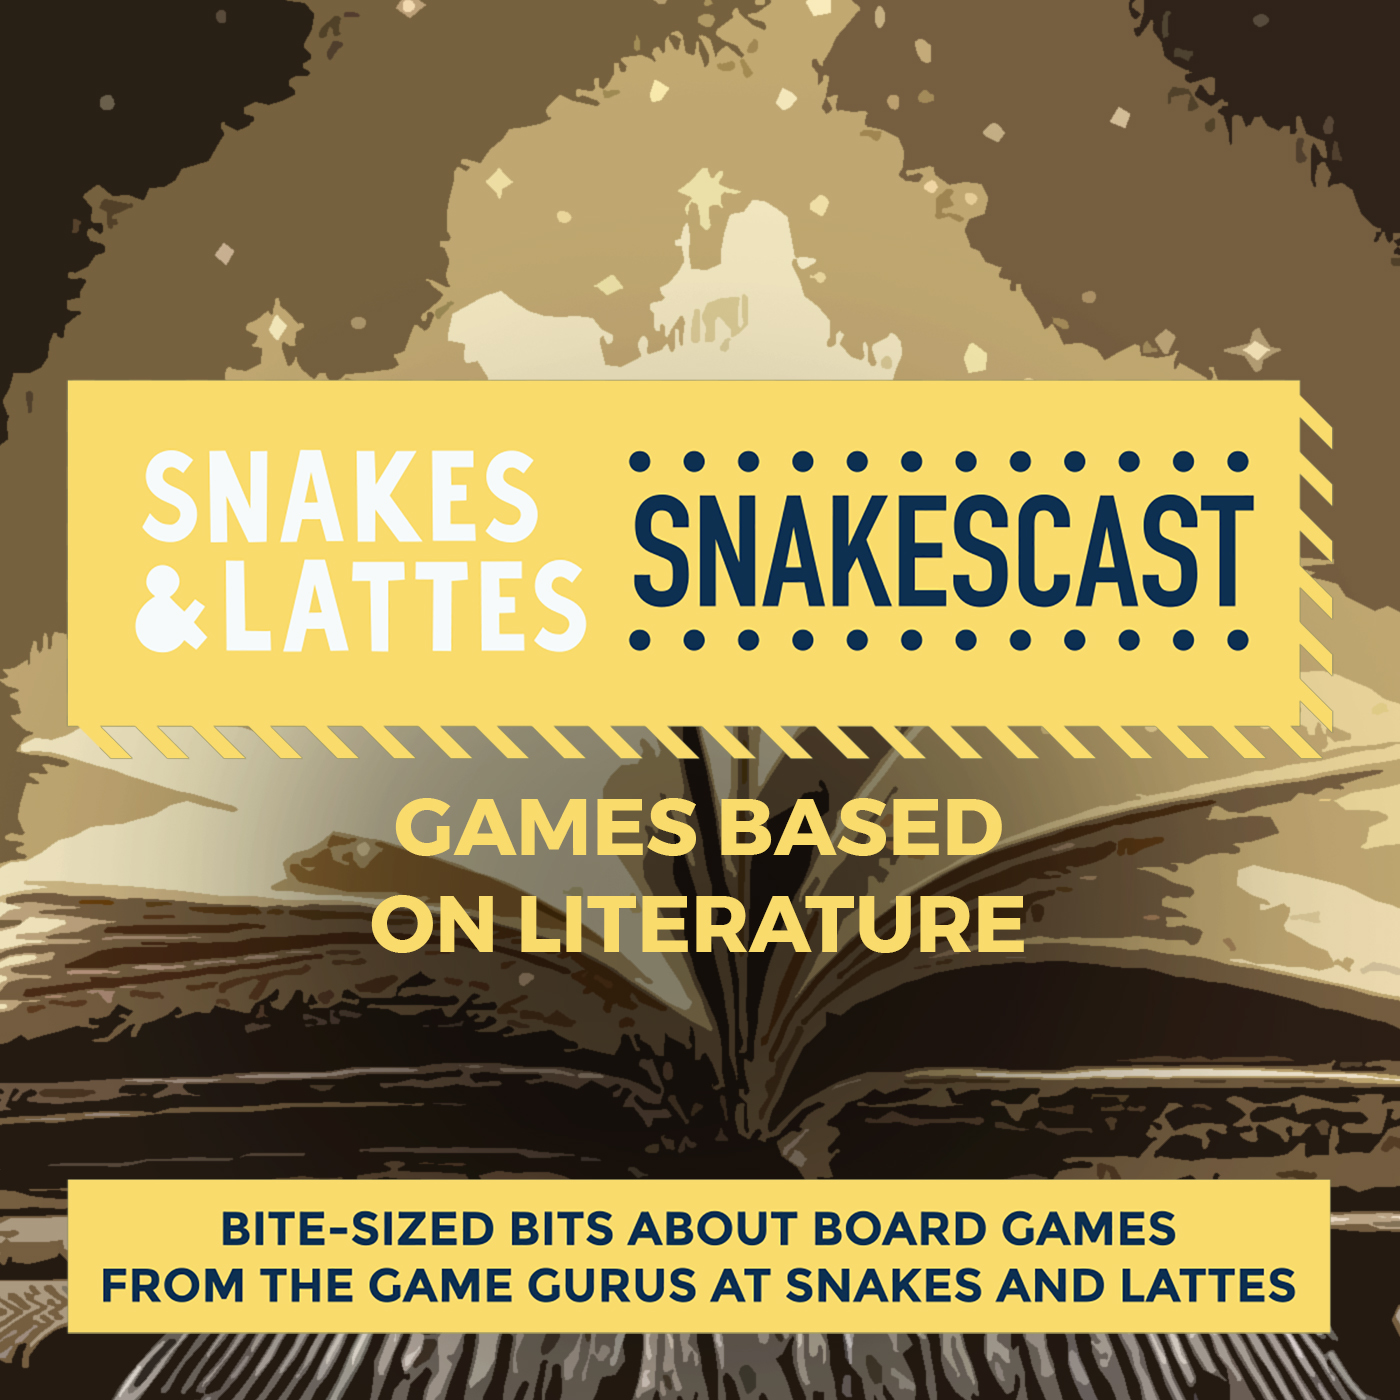 Games Based on Literature, Part 1 - On works of fiction